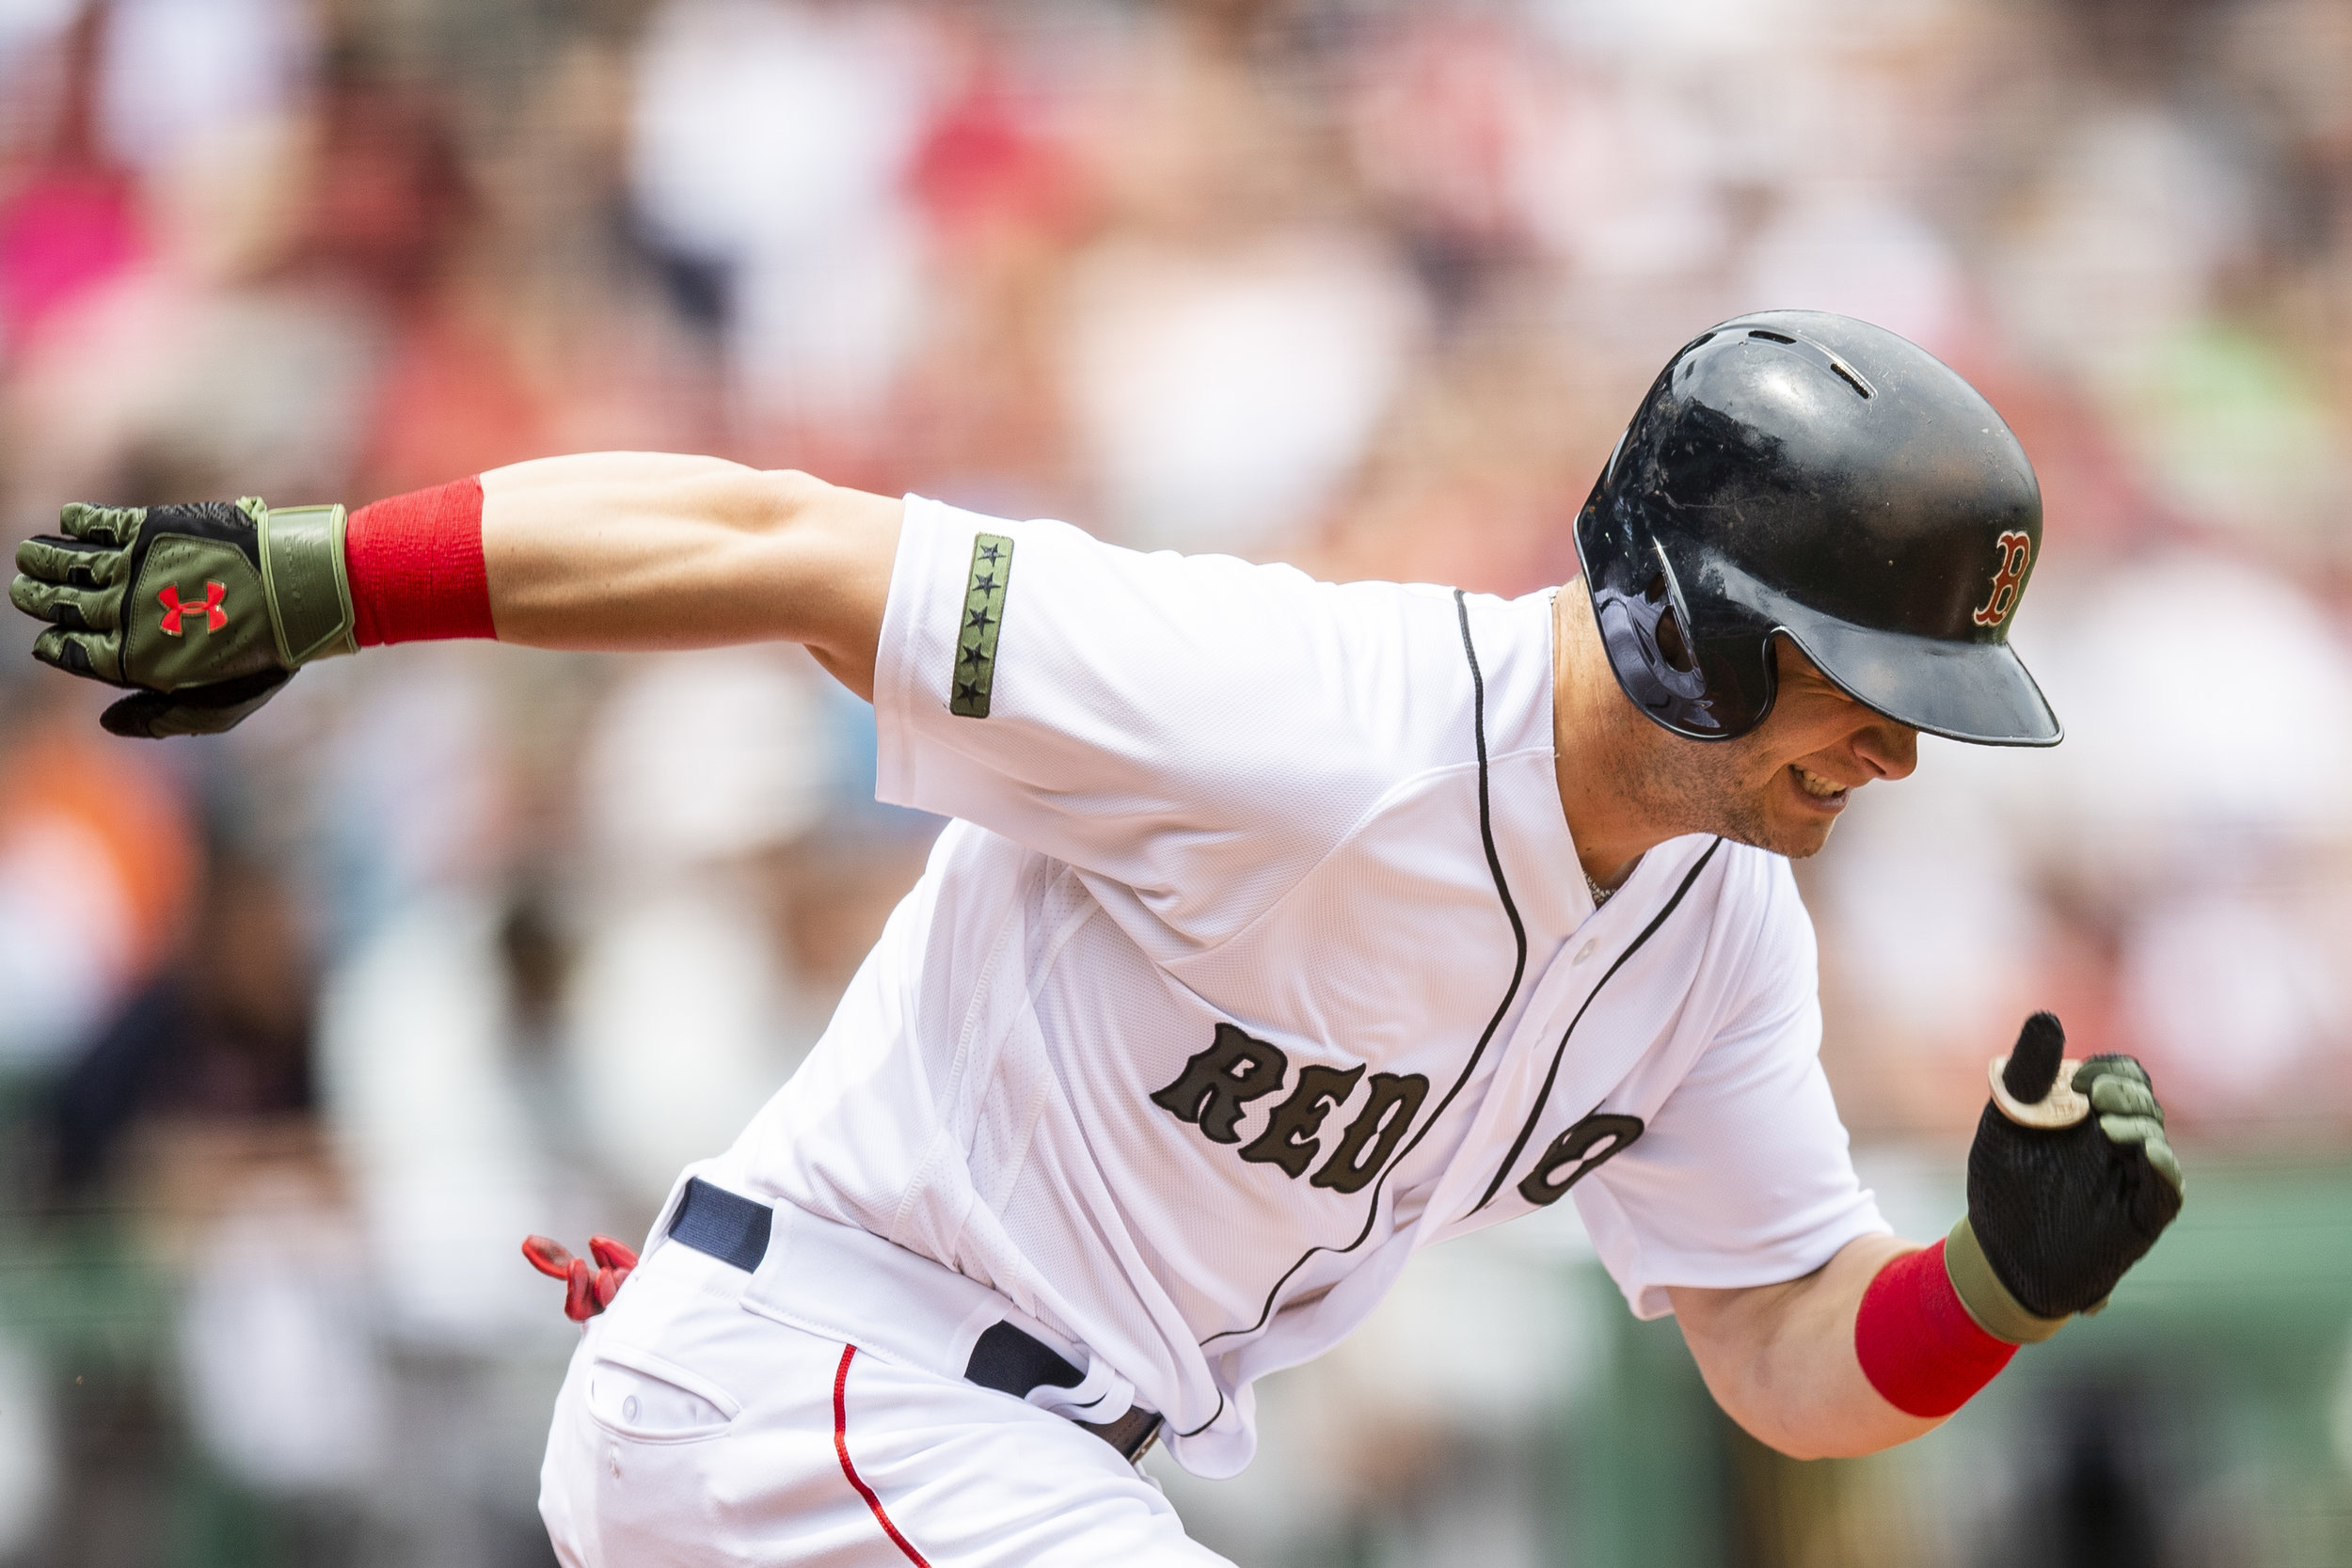 May 26, 2018, Boston, MA: Boston Red Sox outfielder Andrew Benintendi runs down the first base line as the Boston Red Sox face the Atlanta Braves at Fenway Park in Boston, Massachusetts on Saturday, May 26, 2018. (Photo by Matthew Thomas/Boston Red Sox)